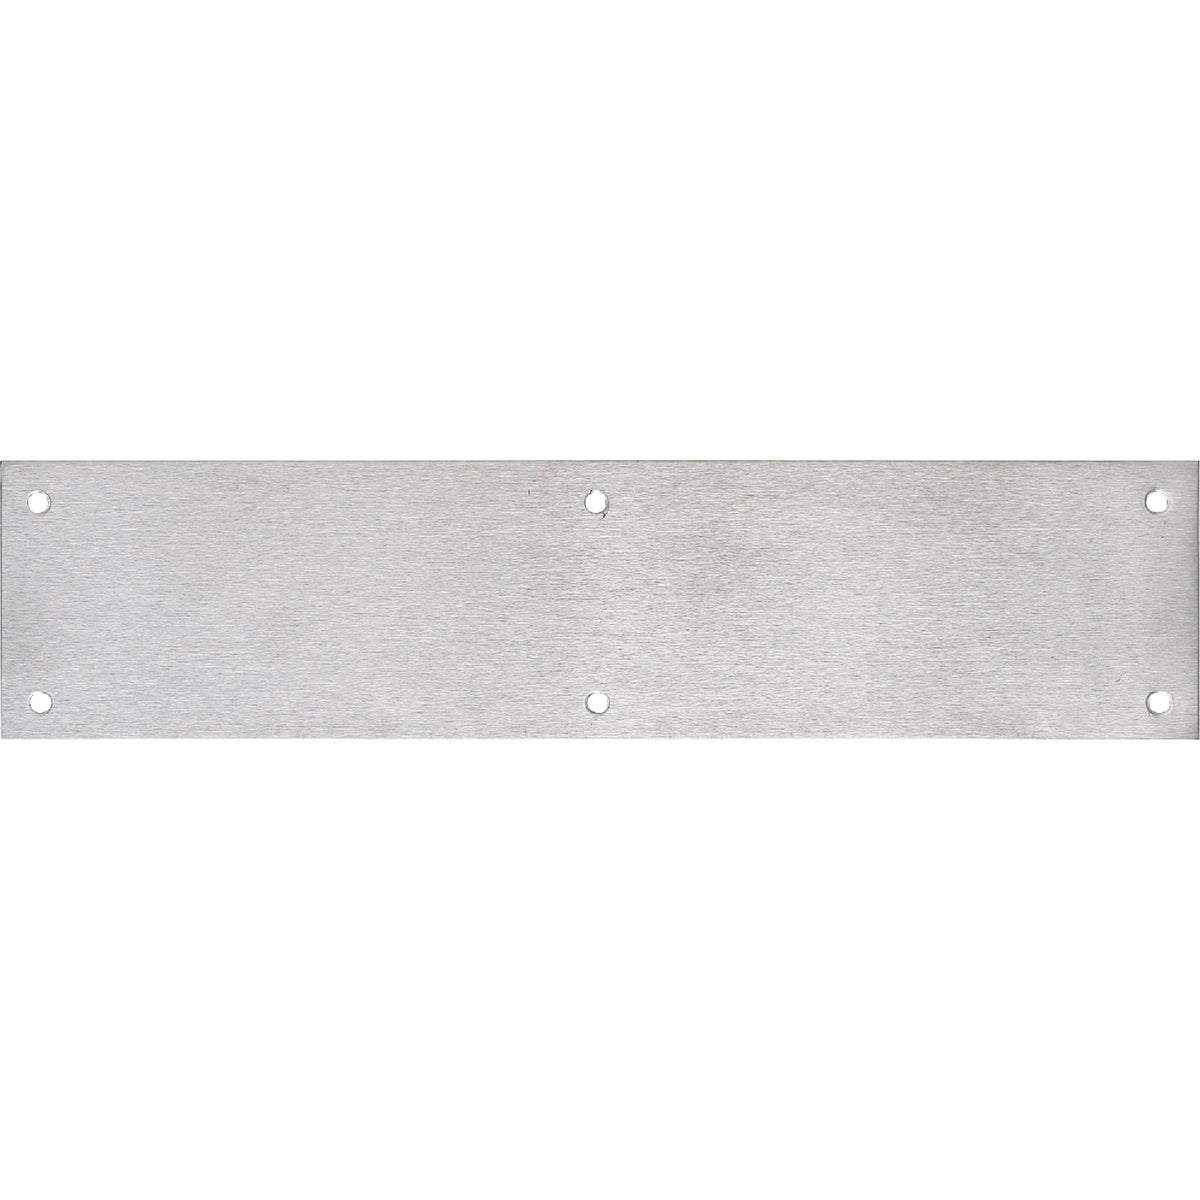 3.5X15 32D PUSH PLATE - DT100072 by Tell Mfg Inc